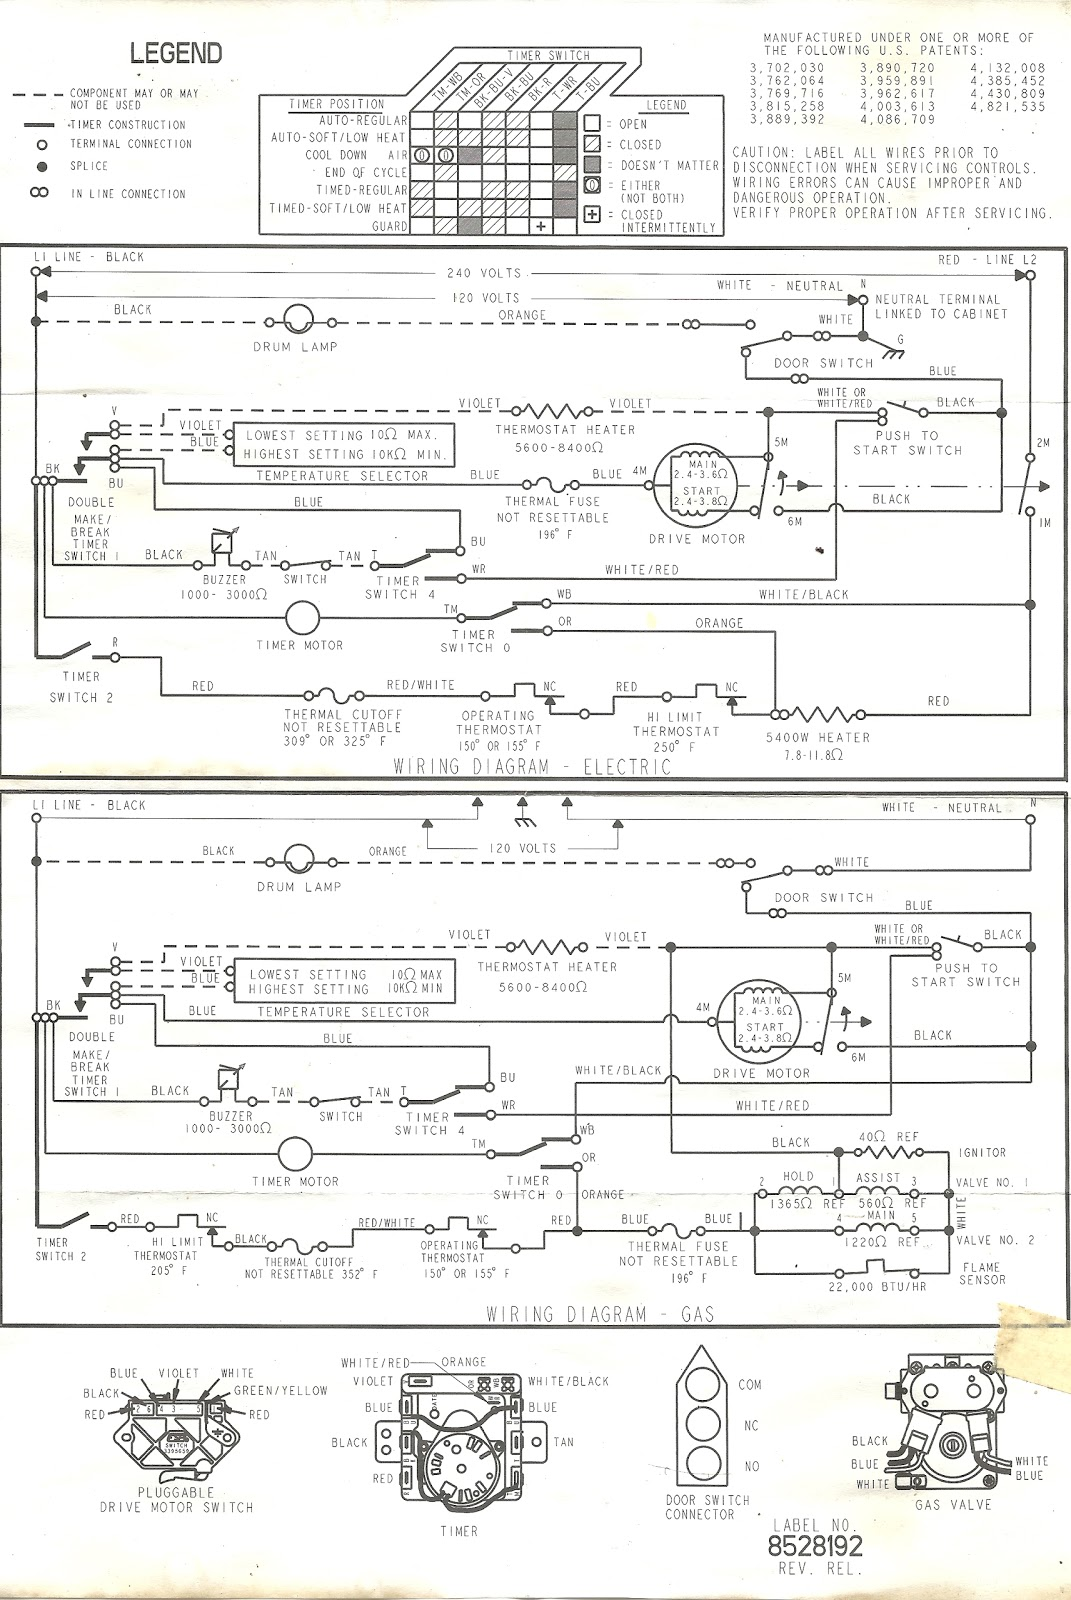 whirlpool dryer wiring diagram cat 5 crossover appliance talk for a kenmore full